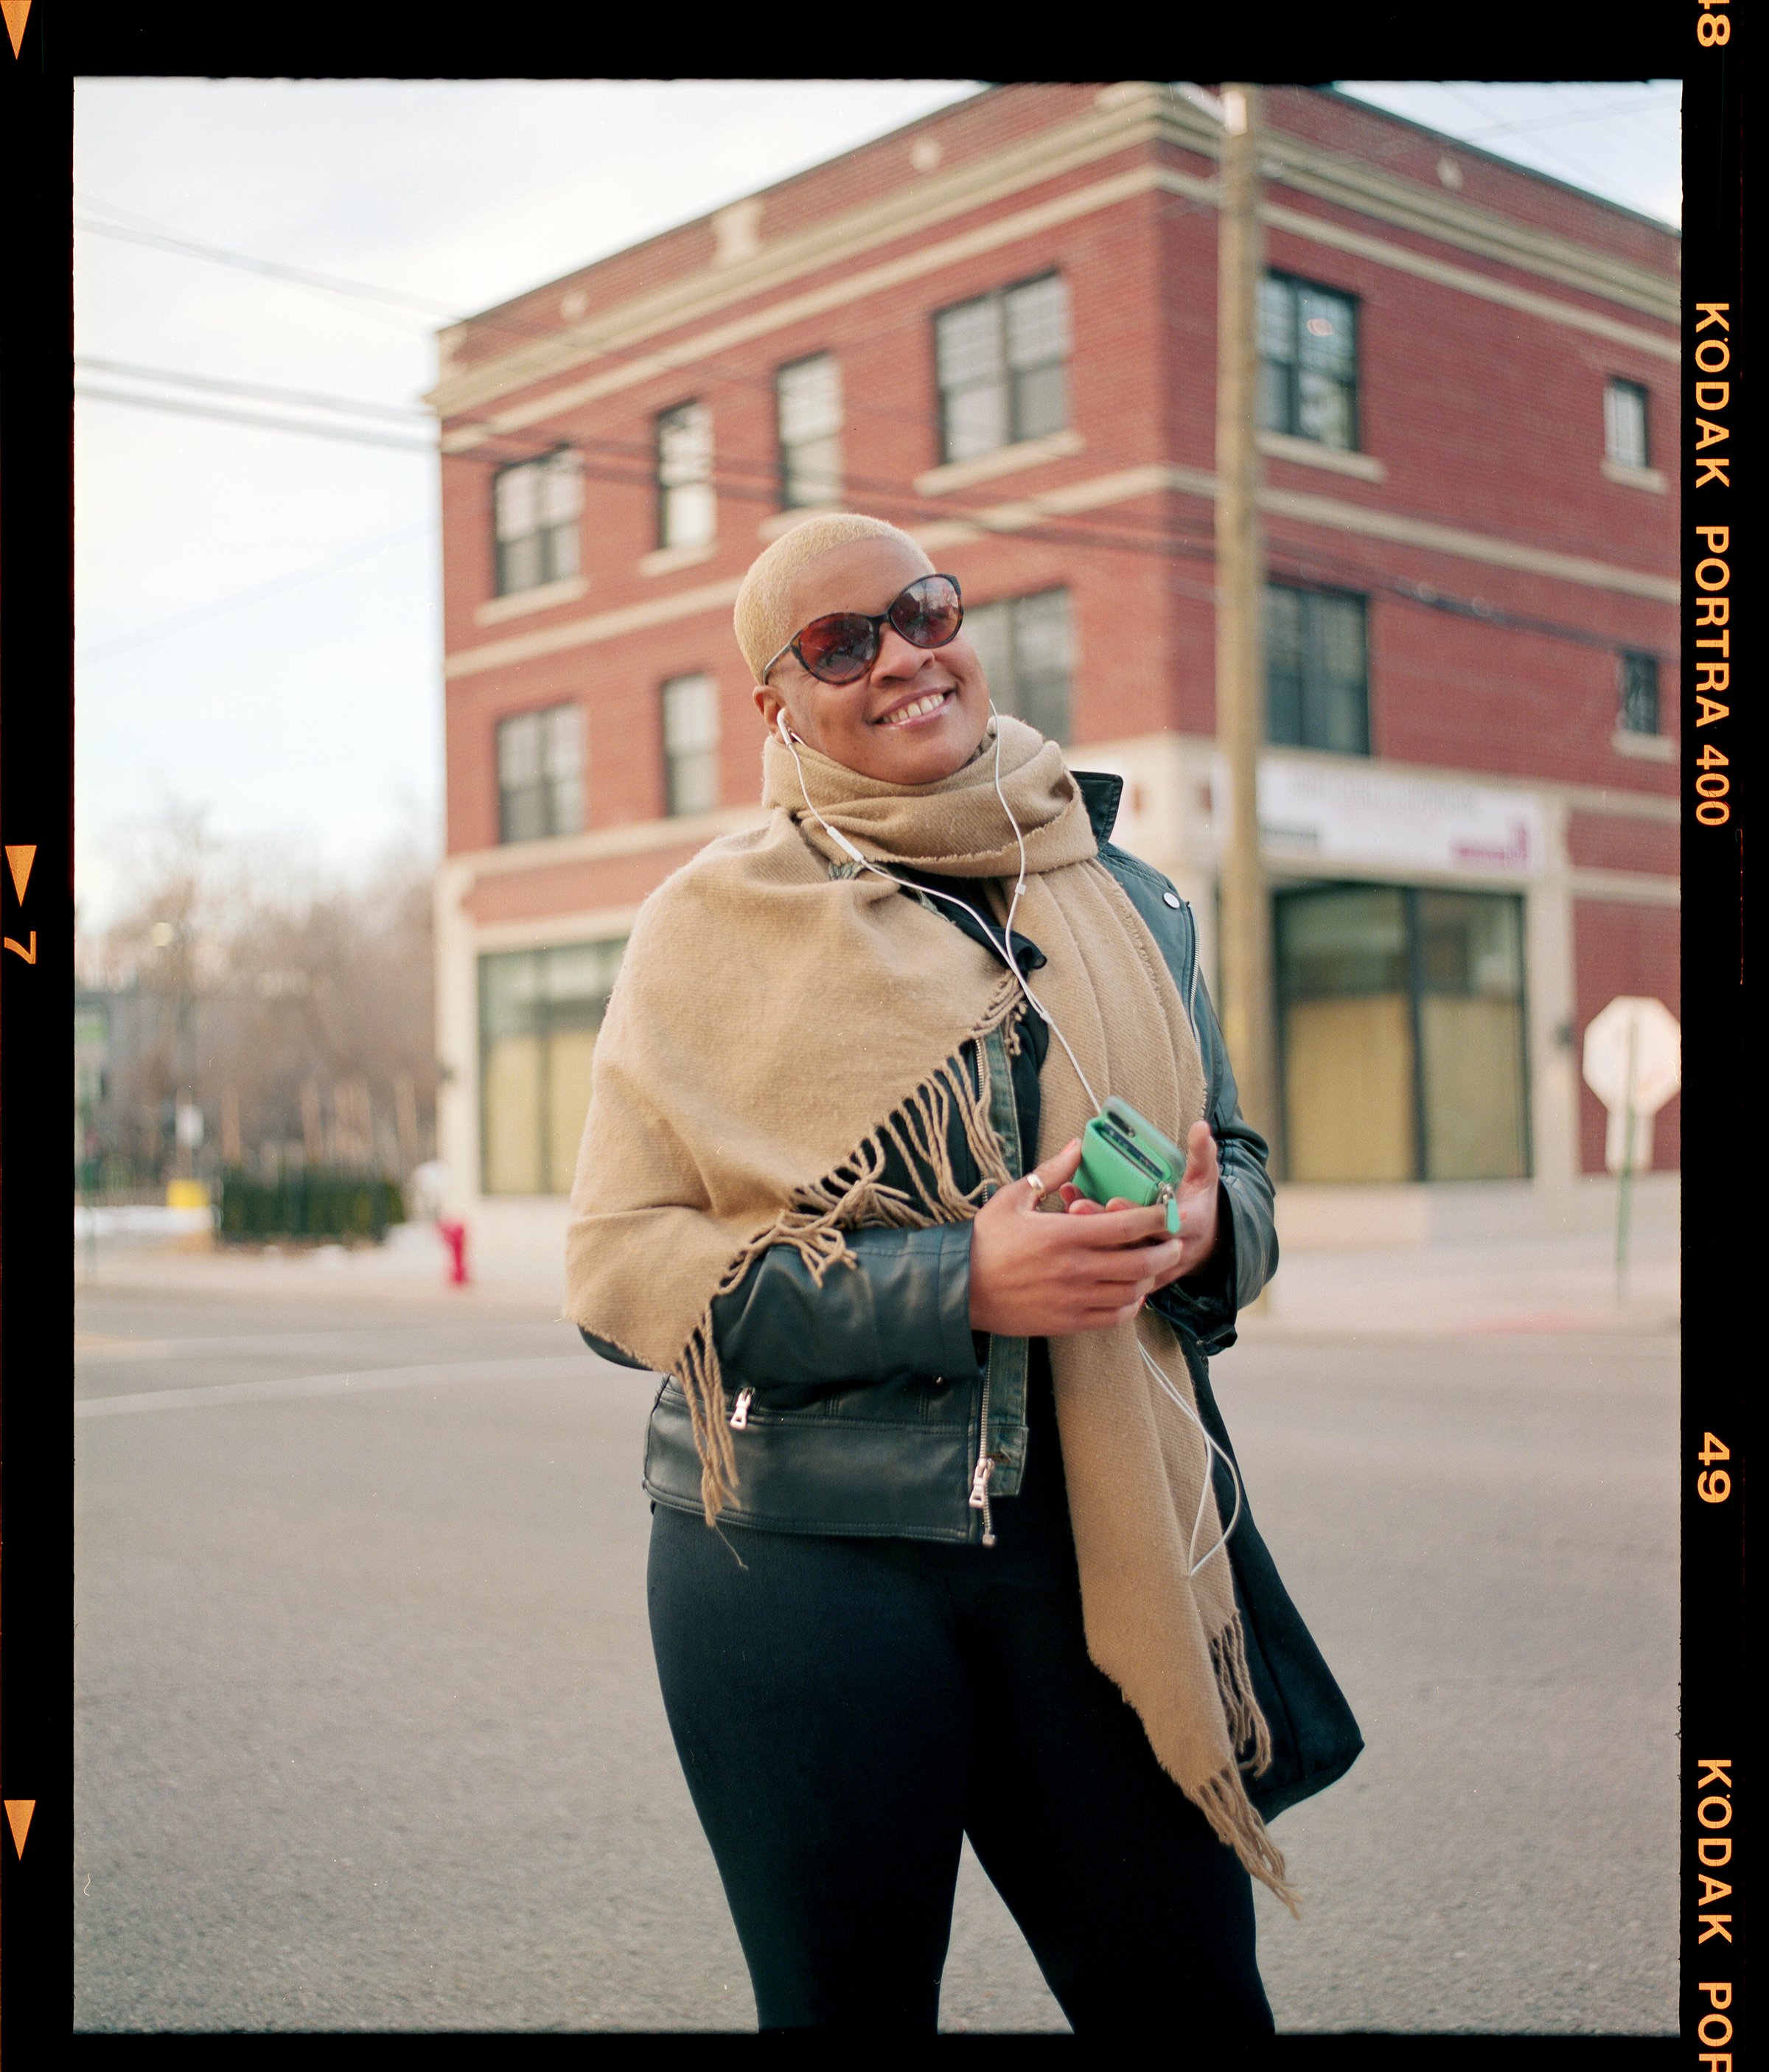 """Me…Medium format?"" - I met this kind lady in the beautiful West Village Detroit. We crossed paths on the sidewalk and she looks at my camera ""Me…. medium format?"" We ended up talking about how she used to work in a studio. She told us that she was really excited to see my buddy and myself out there shooting some Gelatin Emulsion (Film). Needless to say I was happy that she came over to see what we were up to, so I wanted to capture that moment by asking her for her portrait."